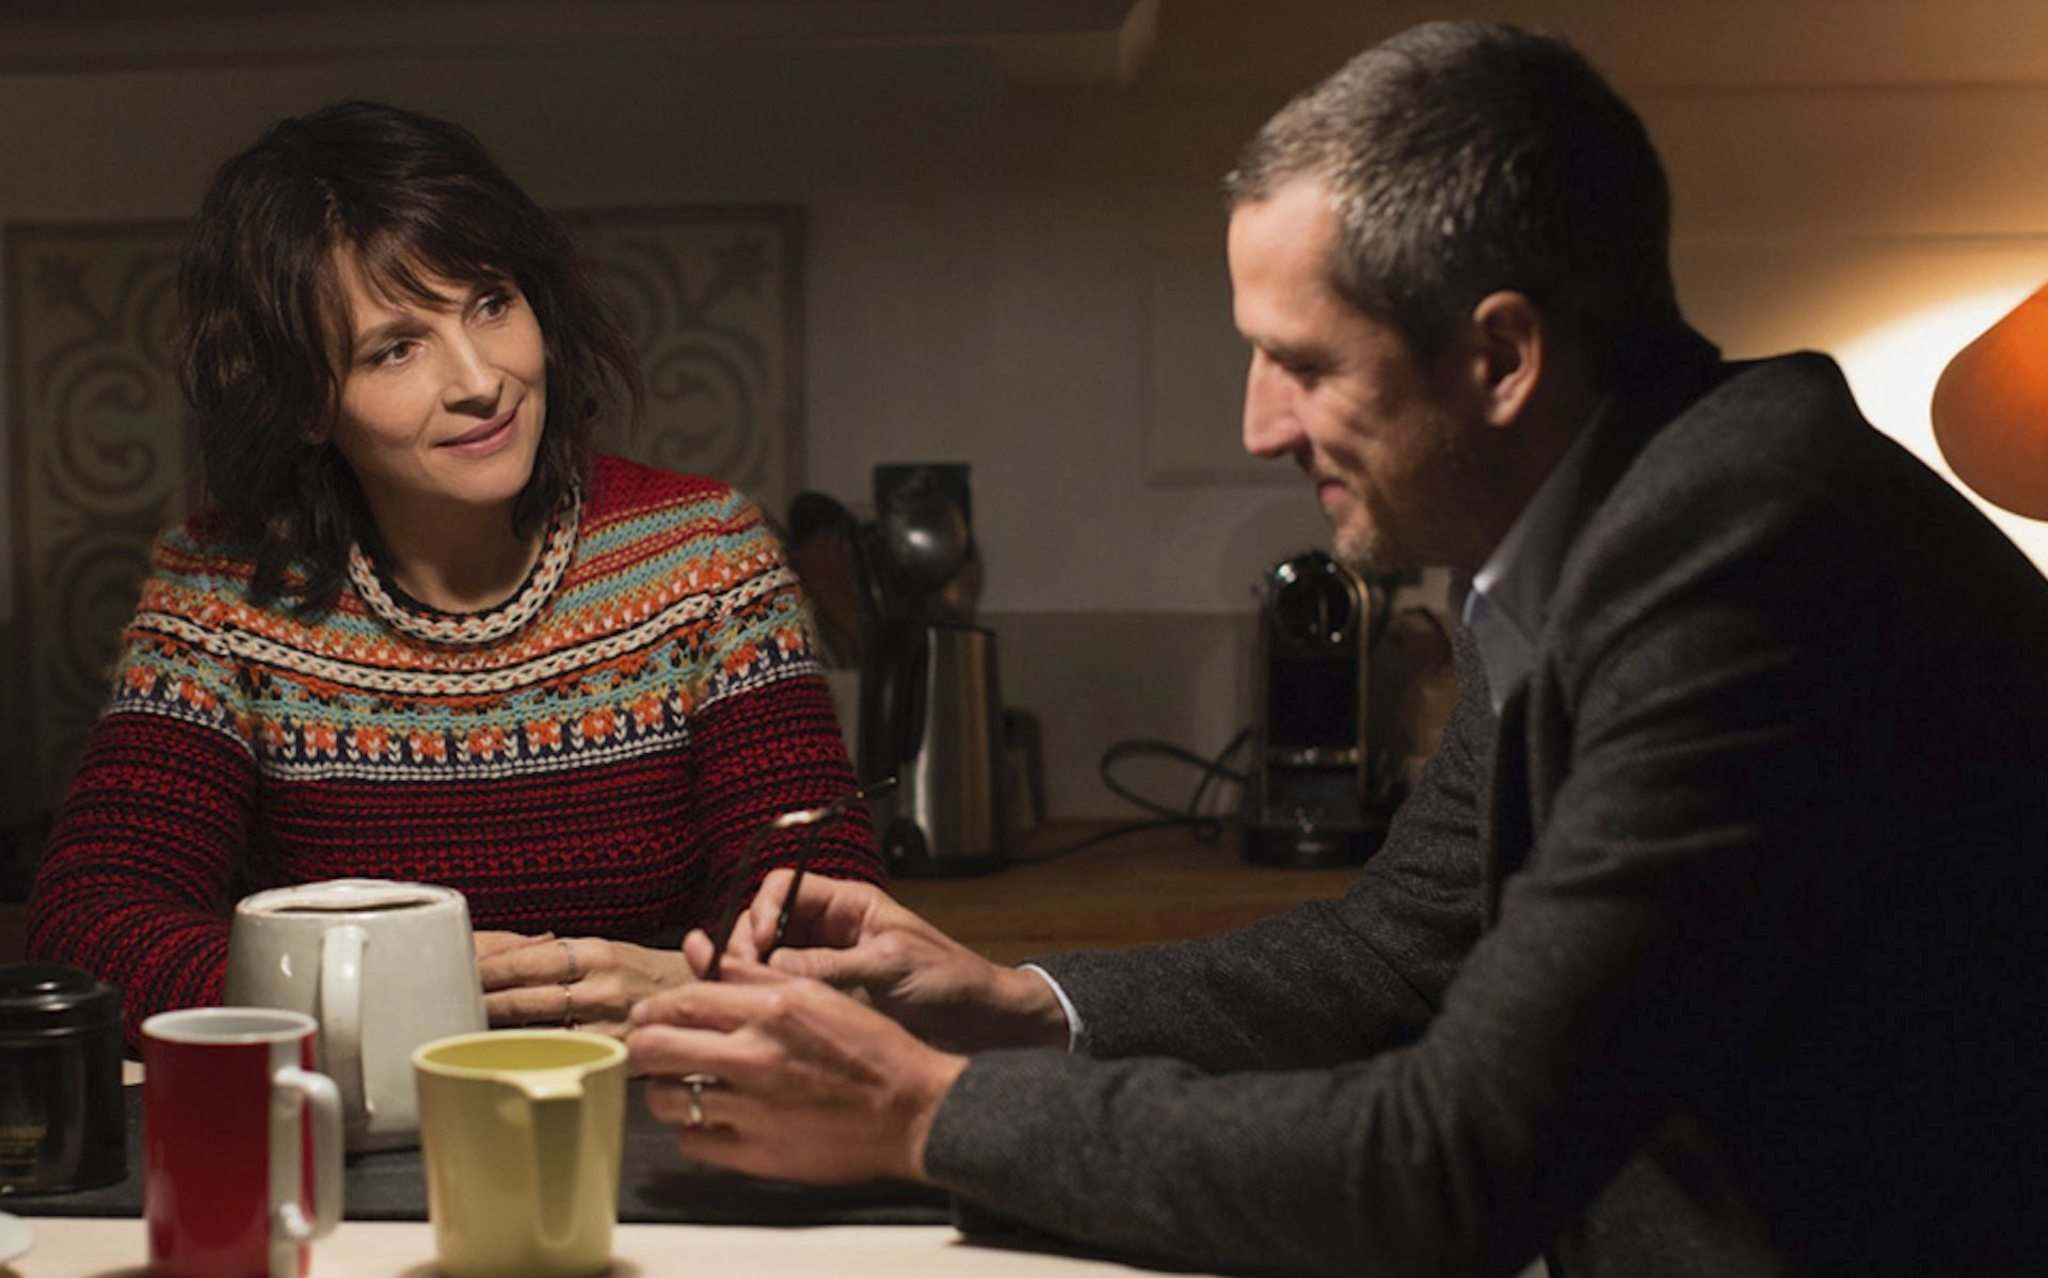 Juliette Binoche and Guillaume Canet star in the film Non-Fiction (Double Vies). (Sundance Selects photo)